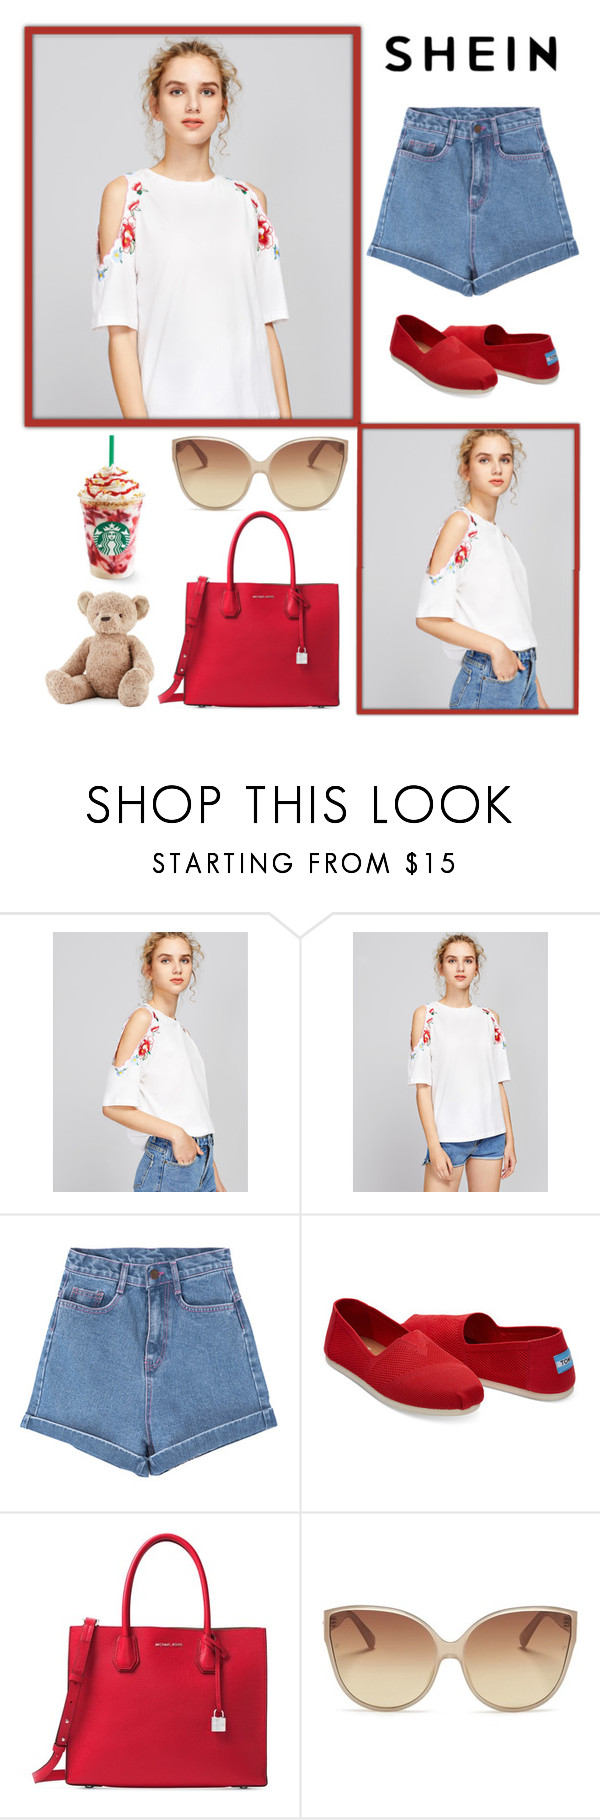 """""""White Shirt"""" by tonia-ro ❤ liked on Polyvore featuring Pink Stitch, TOMS, Michael Kors, Linda Farrow and Jellycat"""